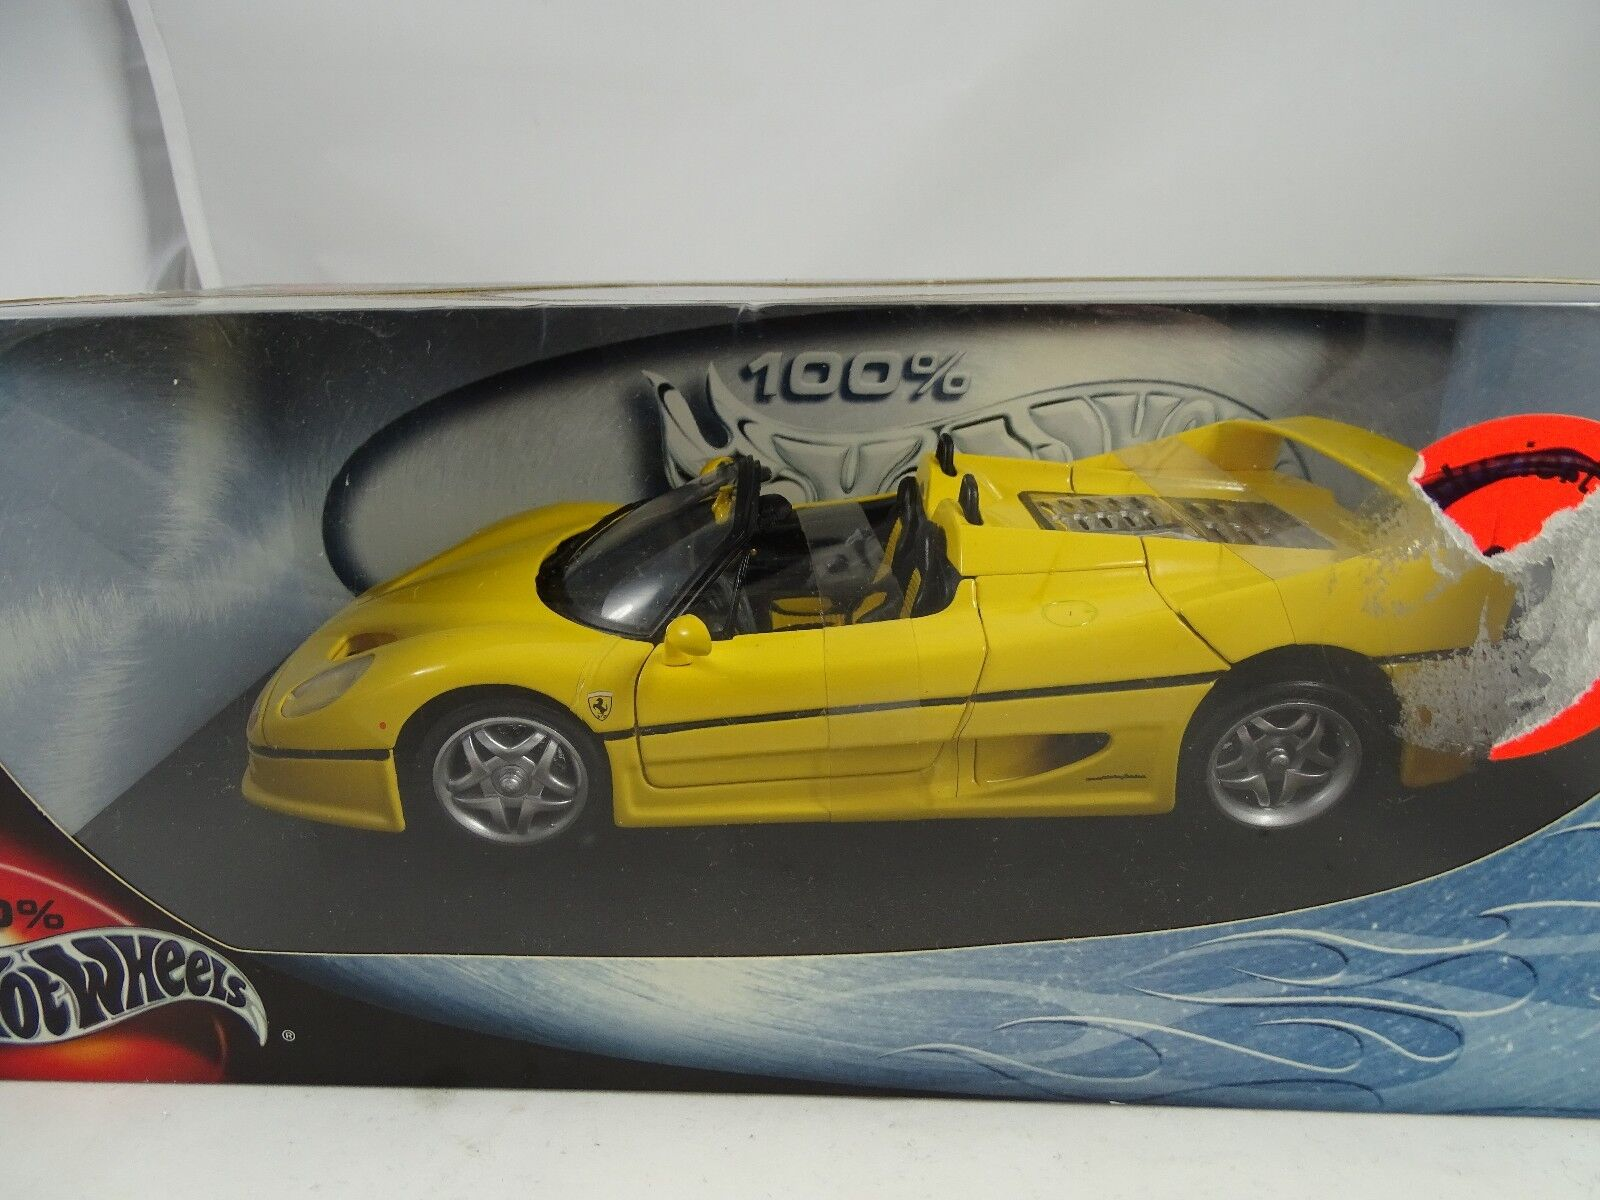 1:18 Hot Wheels Ferrari F50 Ragno Giallo - Rarità §